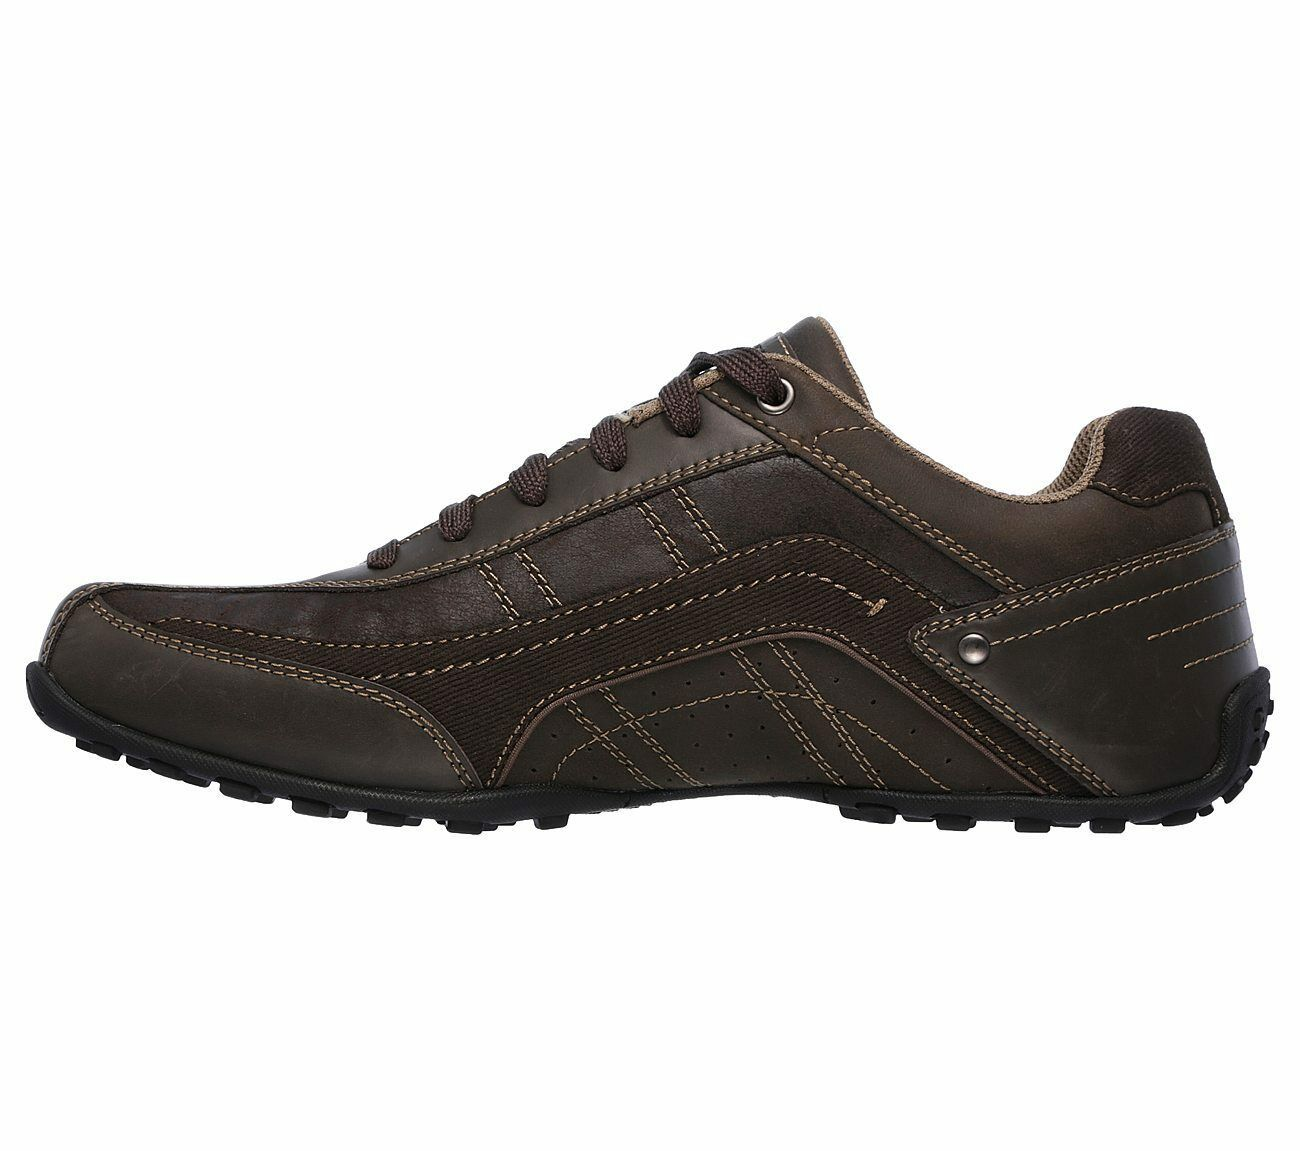 Men's Skechers Citywalk - Elendo Casual Shoes, 64932 /CHOC Sizes 8-14 Chocolate image 5